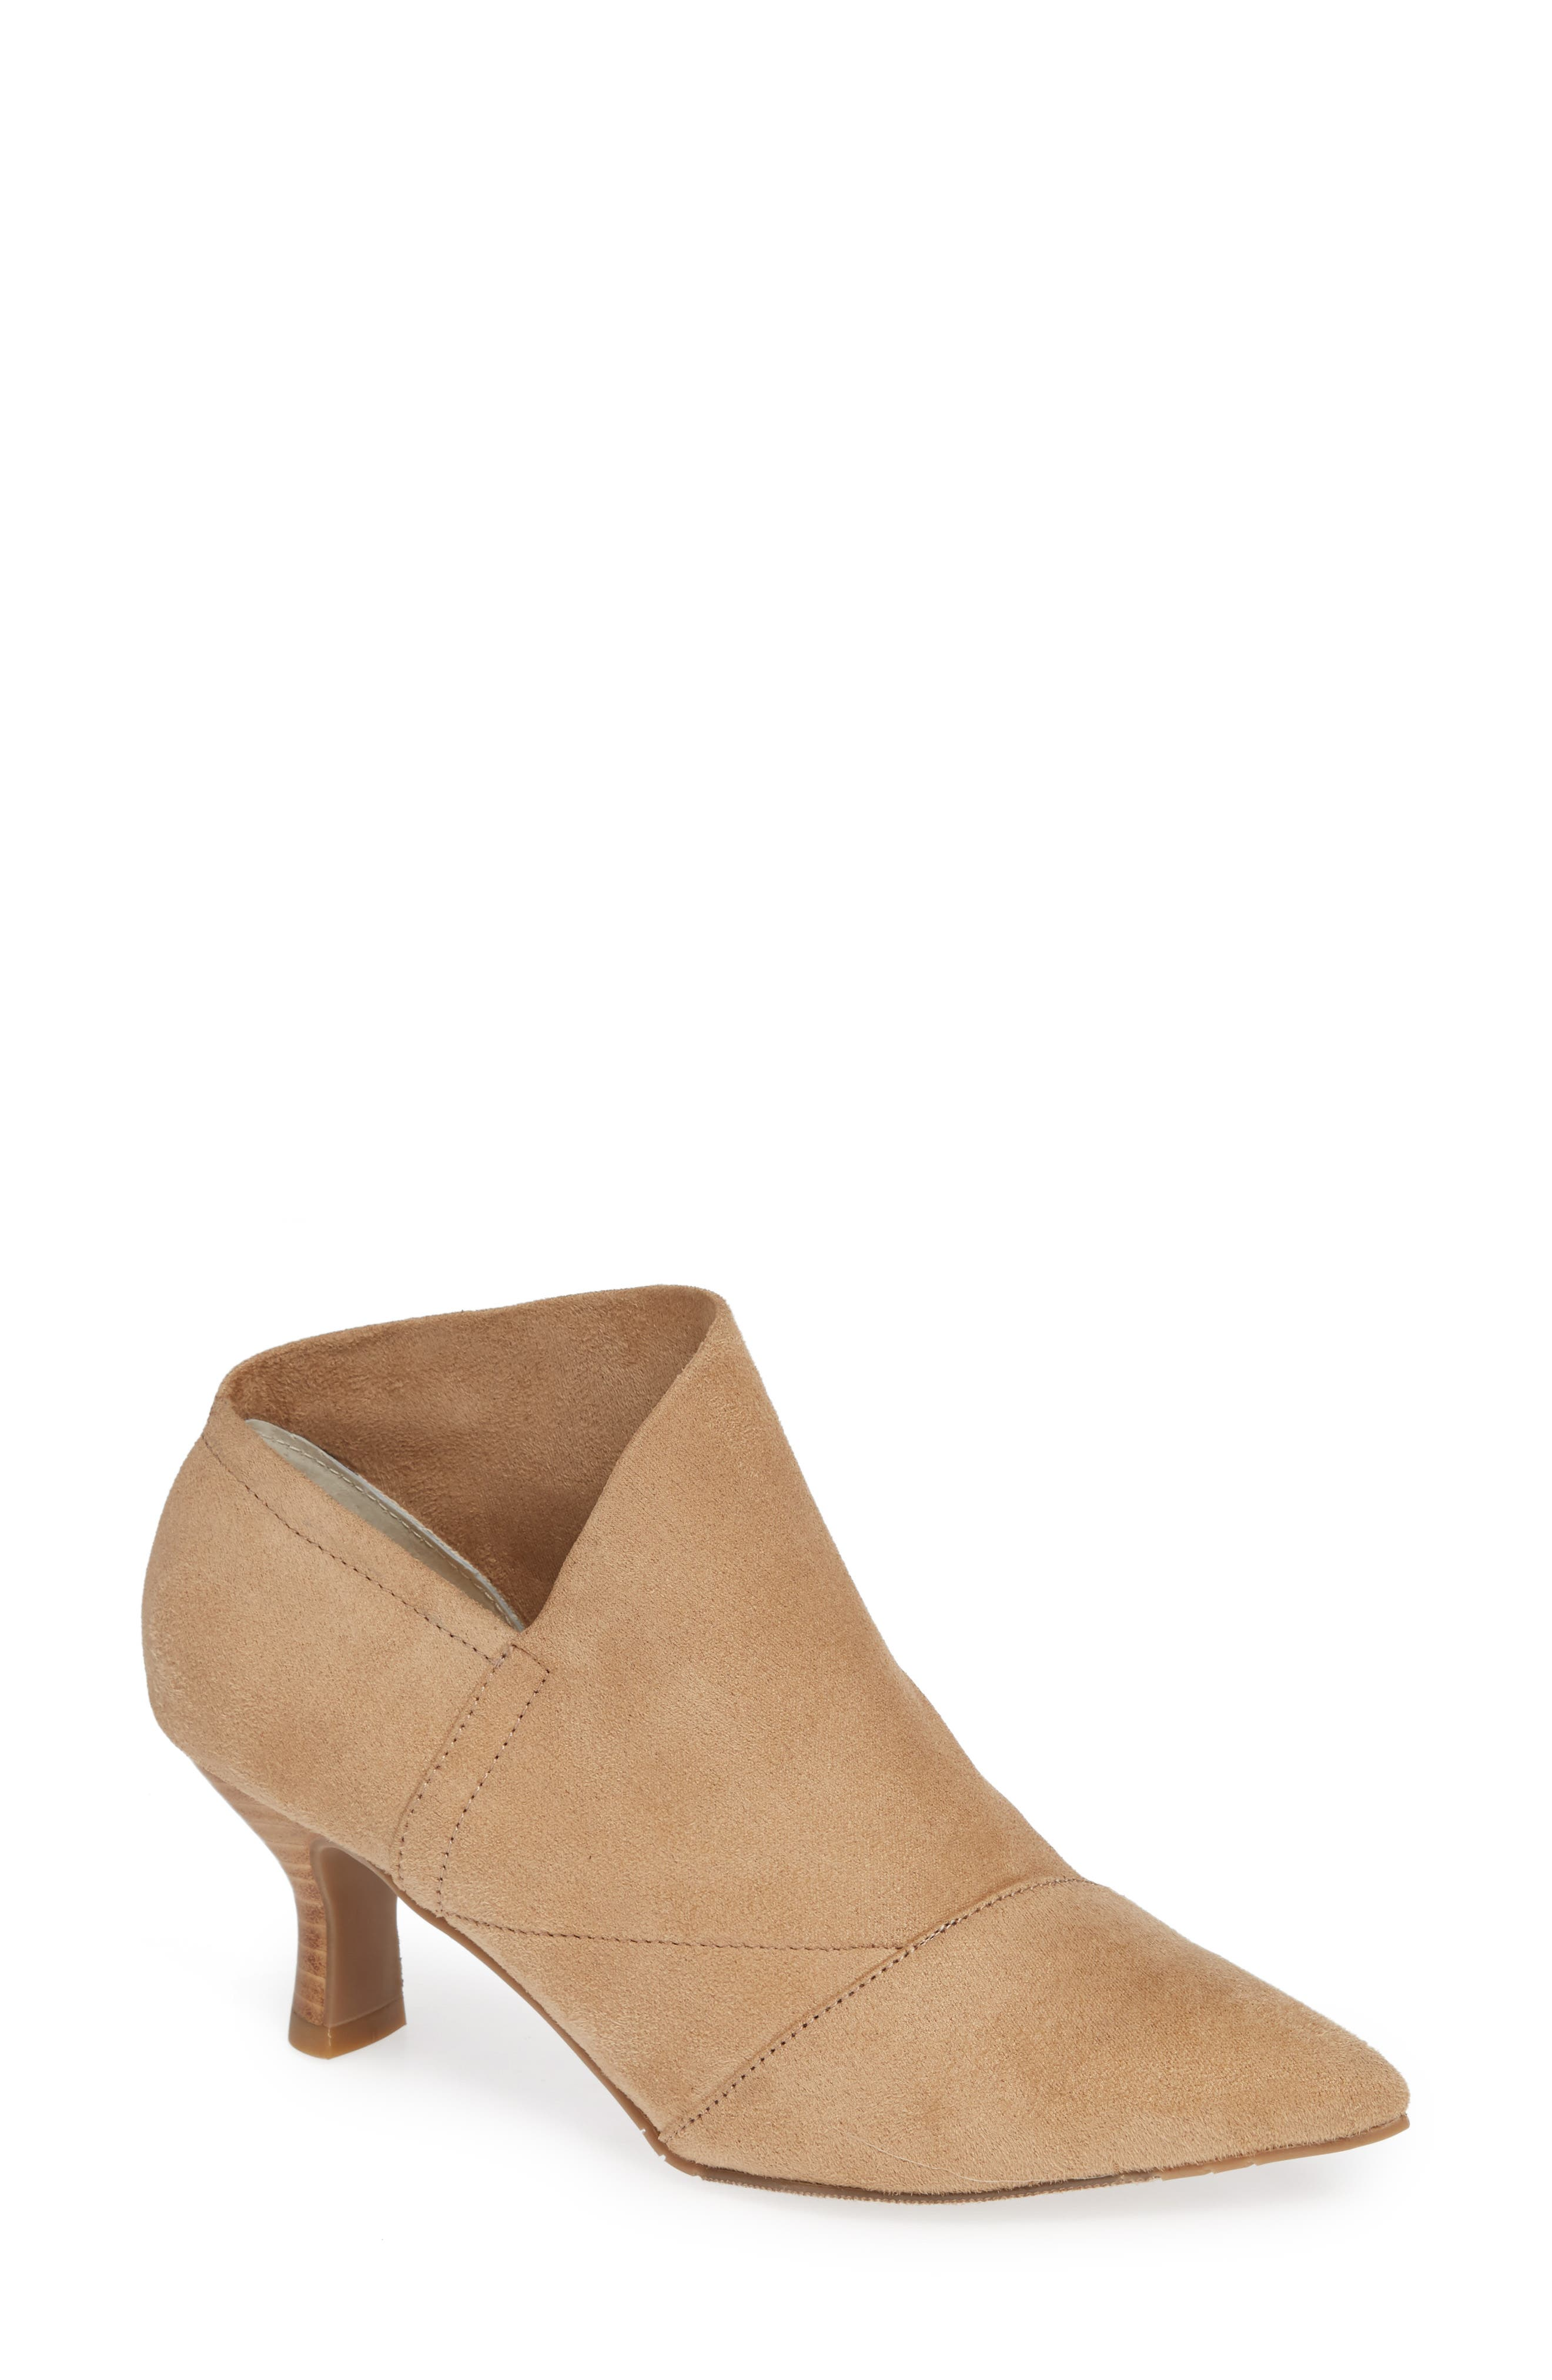 Adrianna Papell Hayes Pointy Toe Bootie- Beige